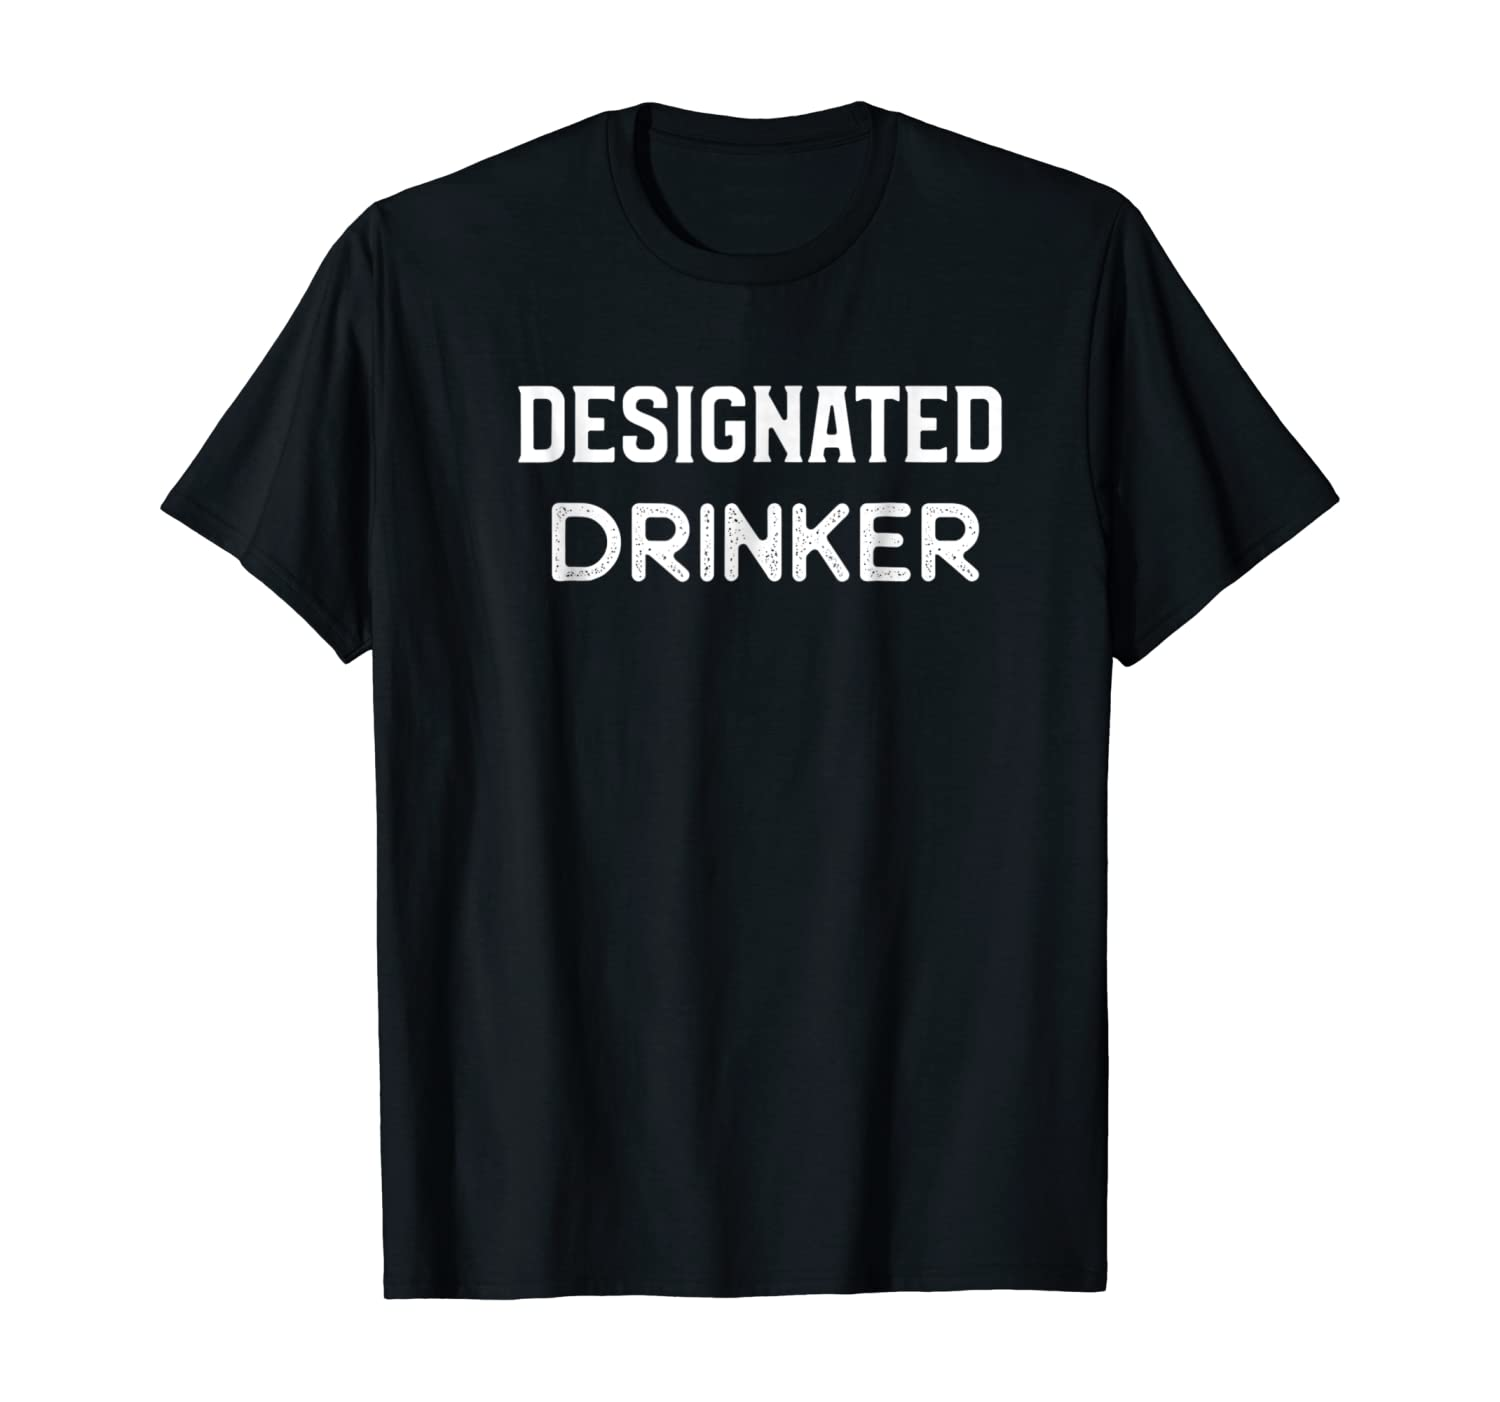 Designated Drinker Shirt for Partying Drinking Beer at Bar